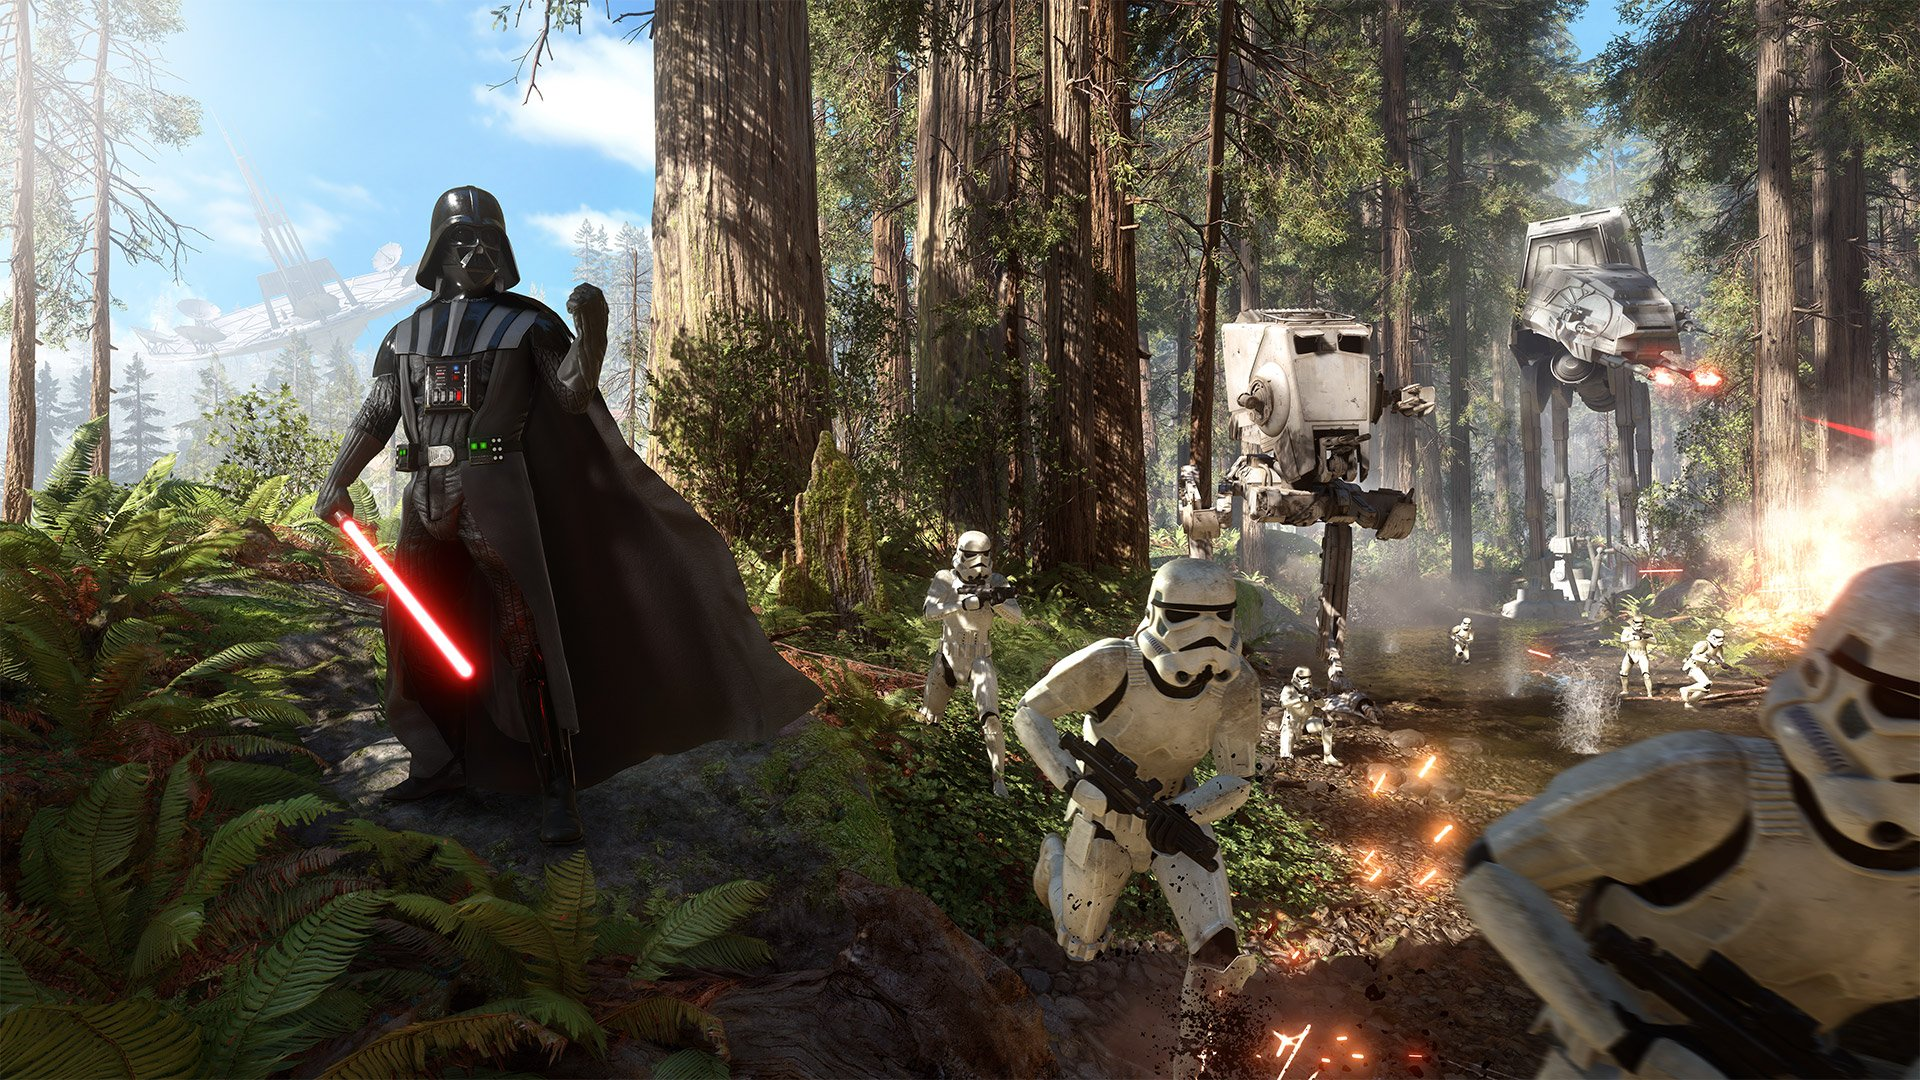 EA Play Returns For A Second Year Running, Publisher Skipping E3 Once More